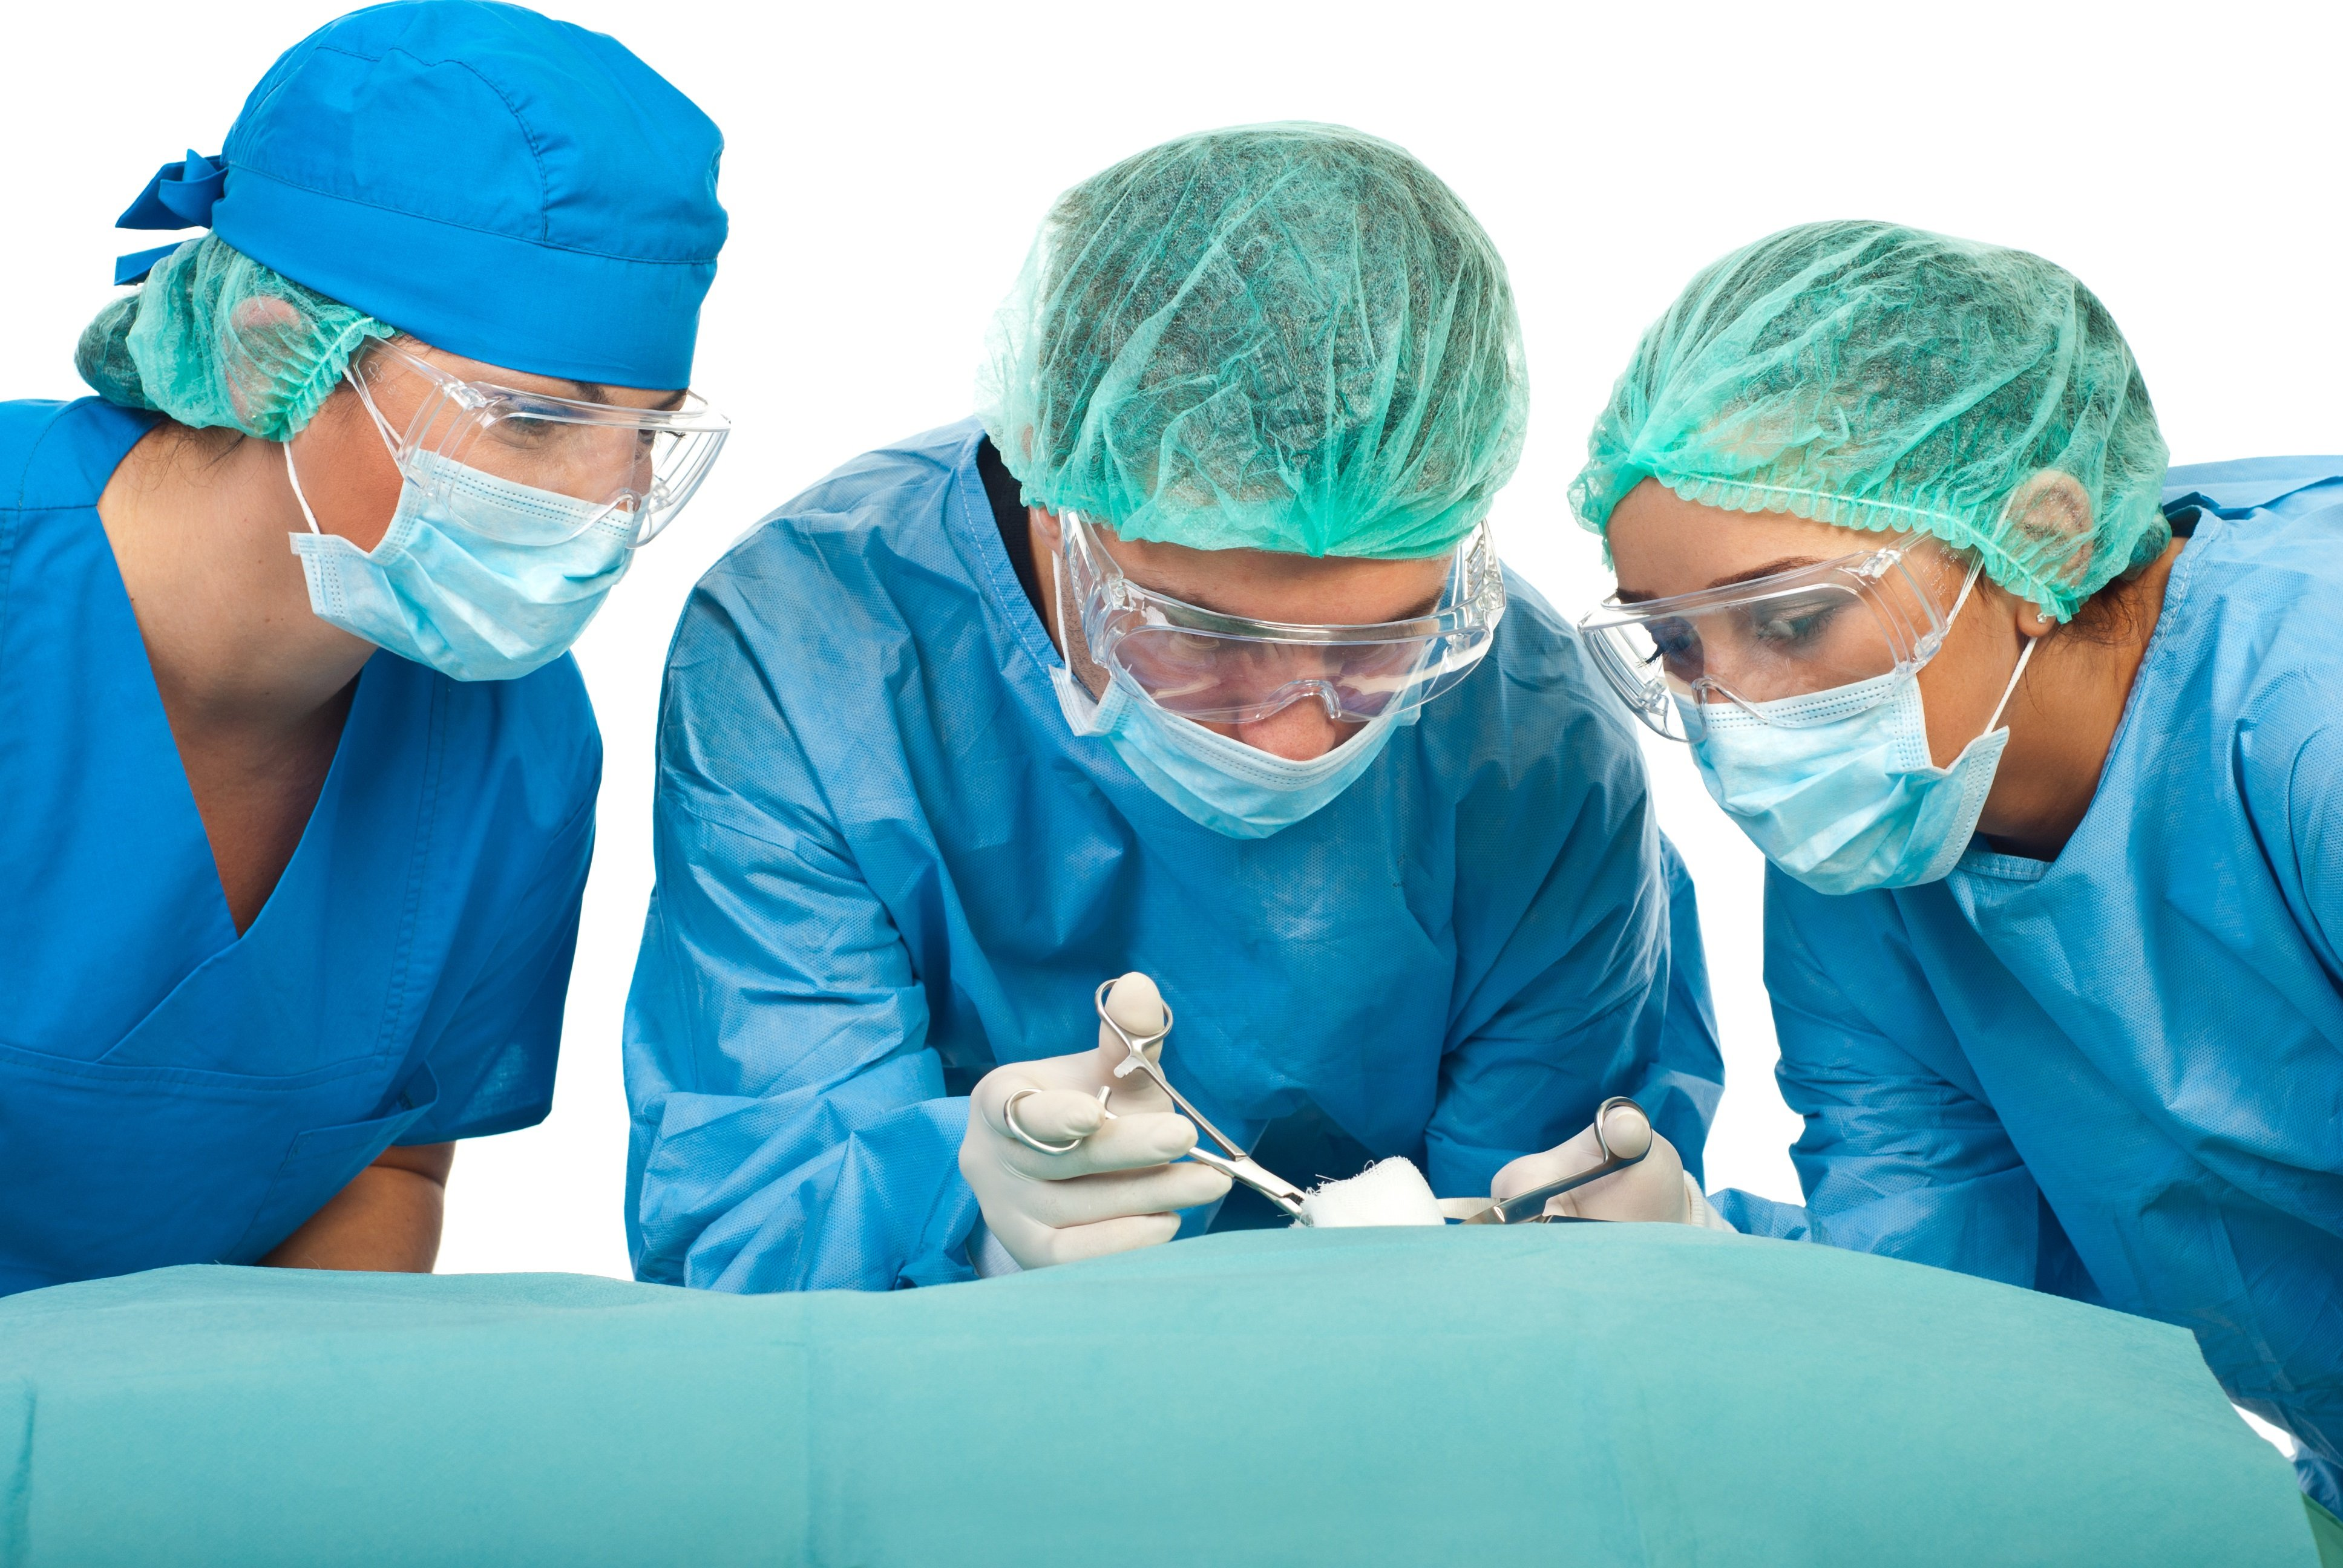 three surgeons doing a surgery wearing blue gowns and head and